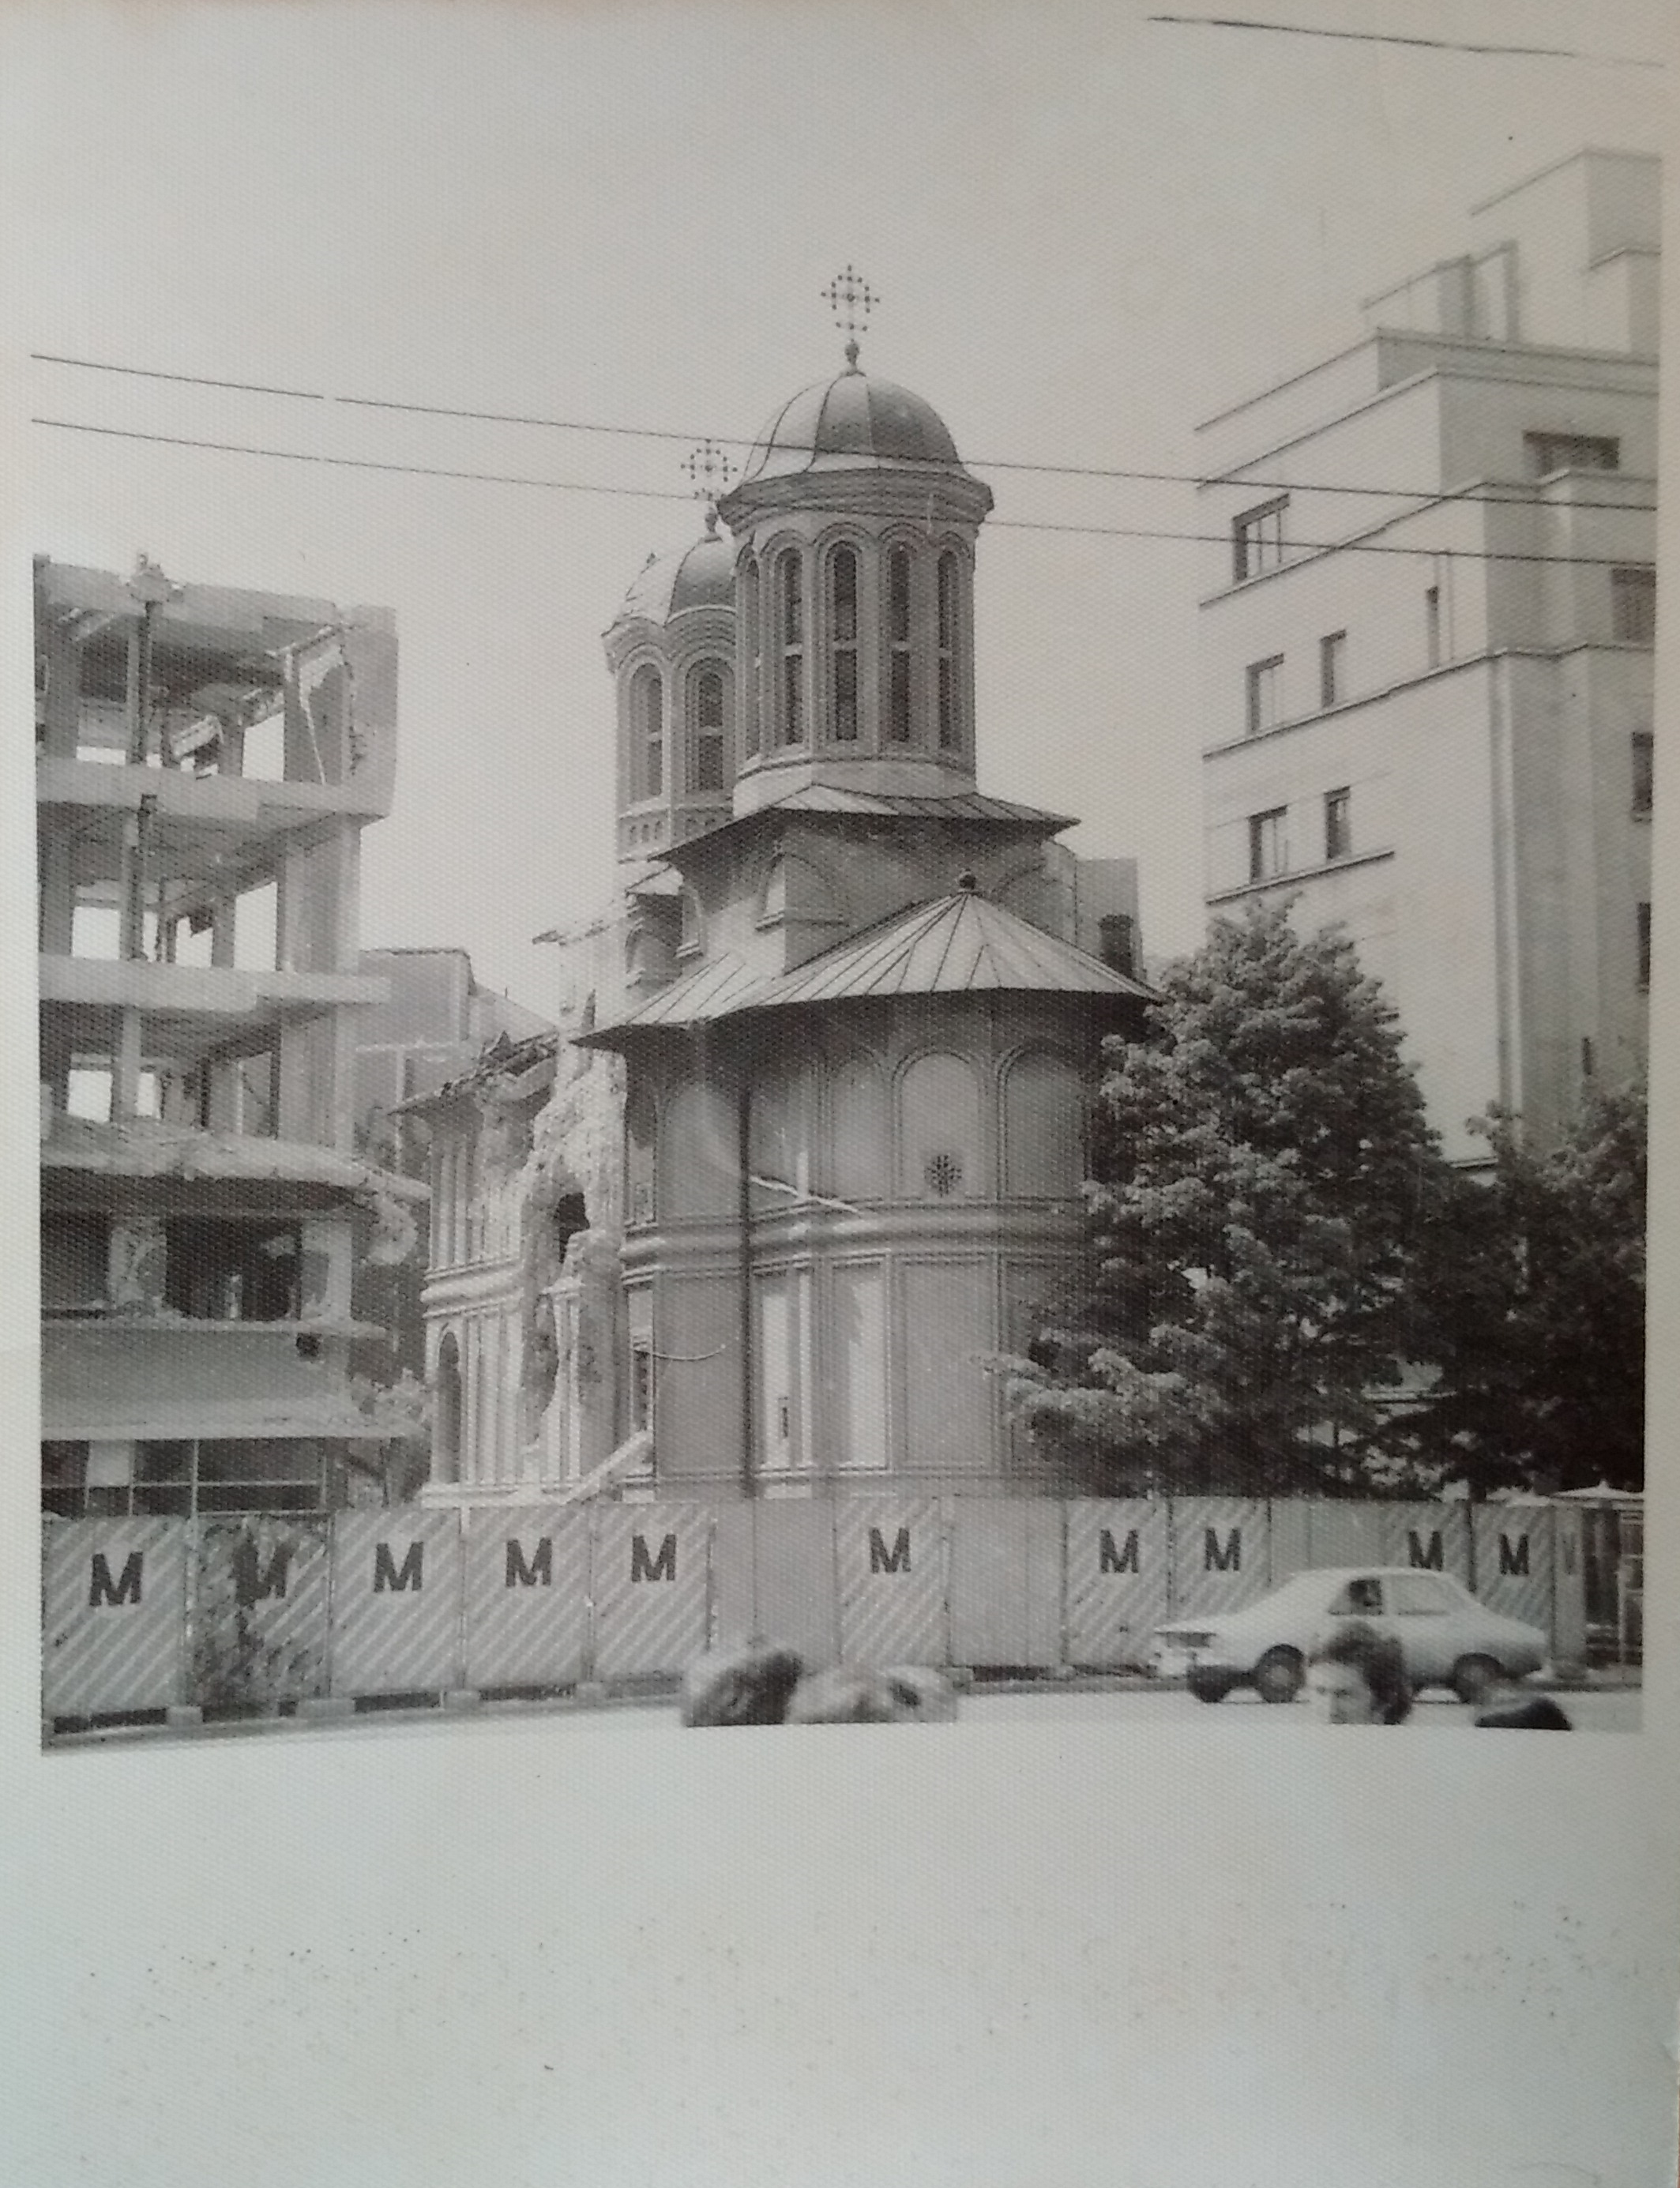 Enei Church damaged by the 1977 earthquake before demolition